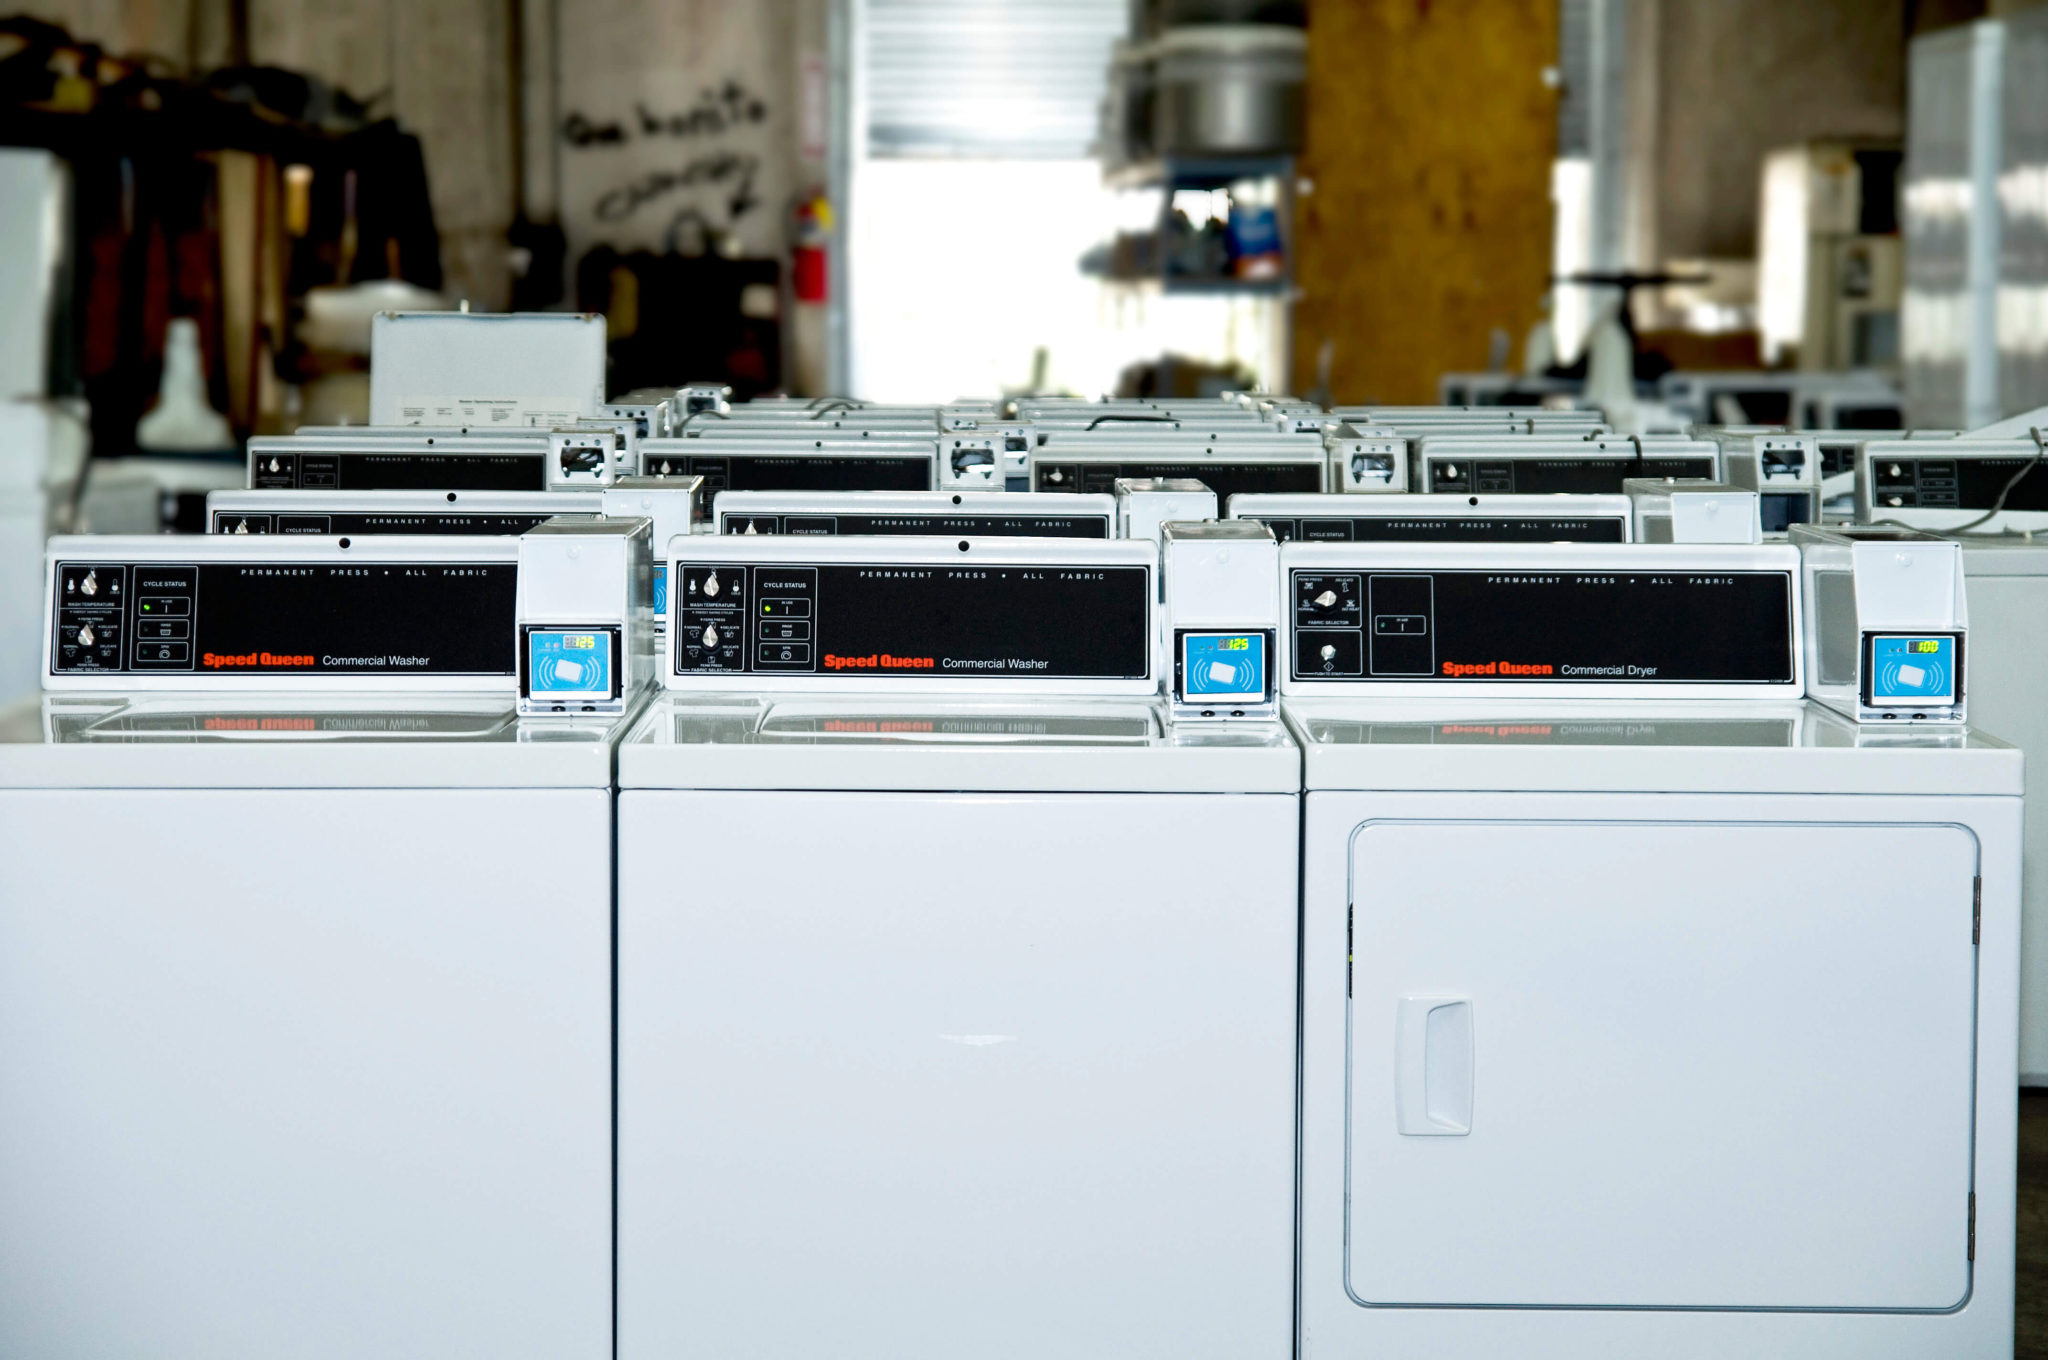 Laundry Room Solutions for Commercial Buildings | CommercialLaundriesOrlando.com